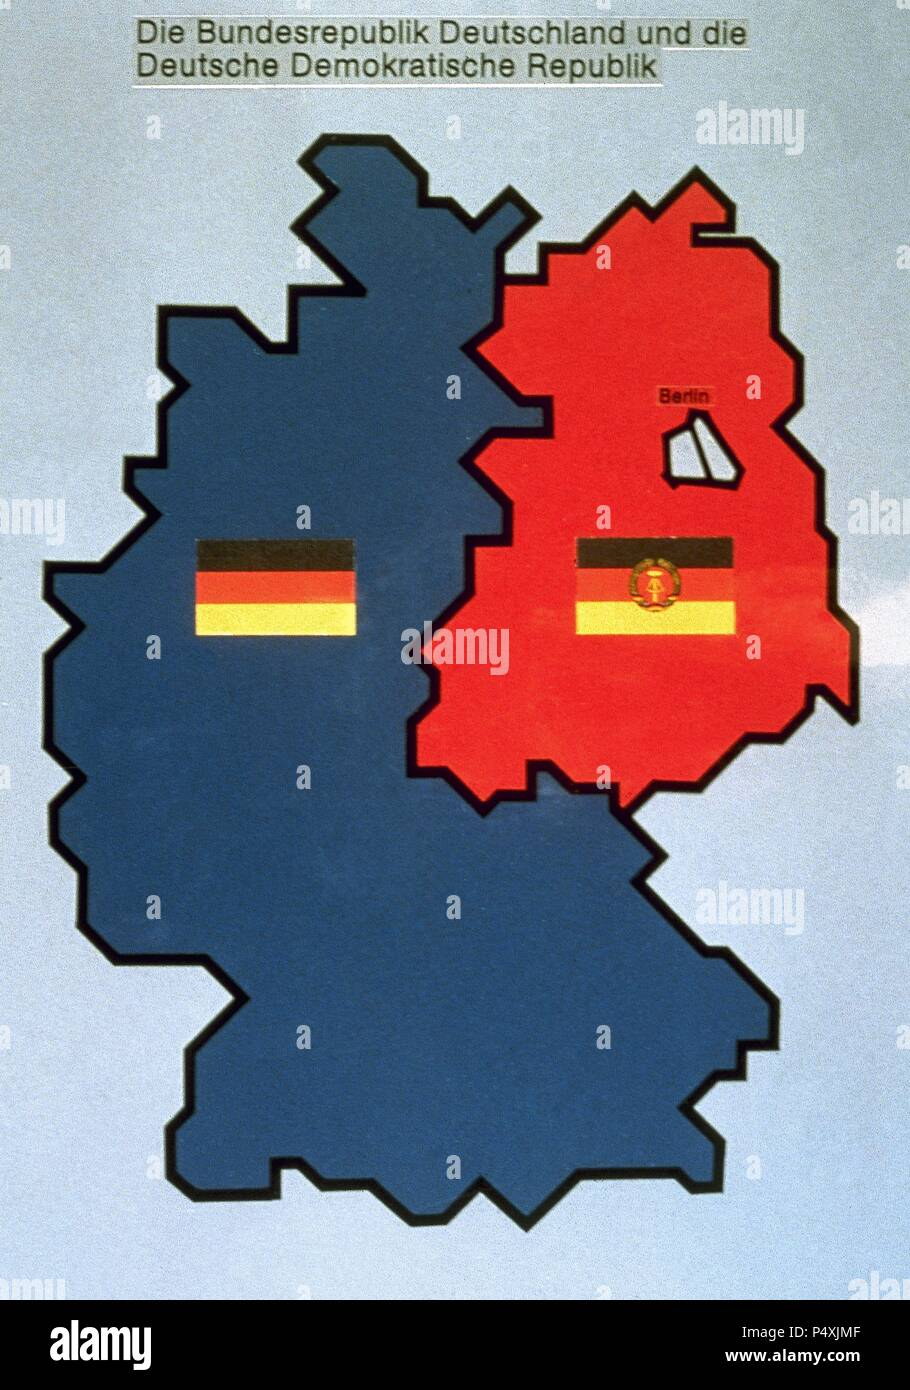 History Of Germany 1949 1990 Map Of The Federal And Democratic